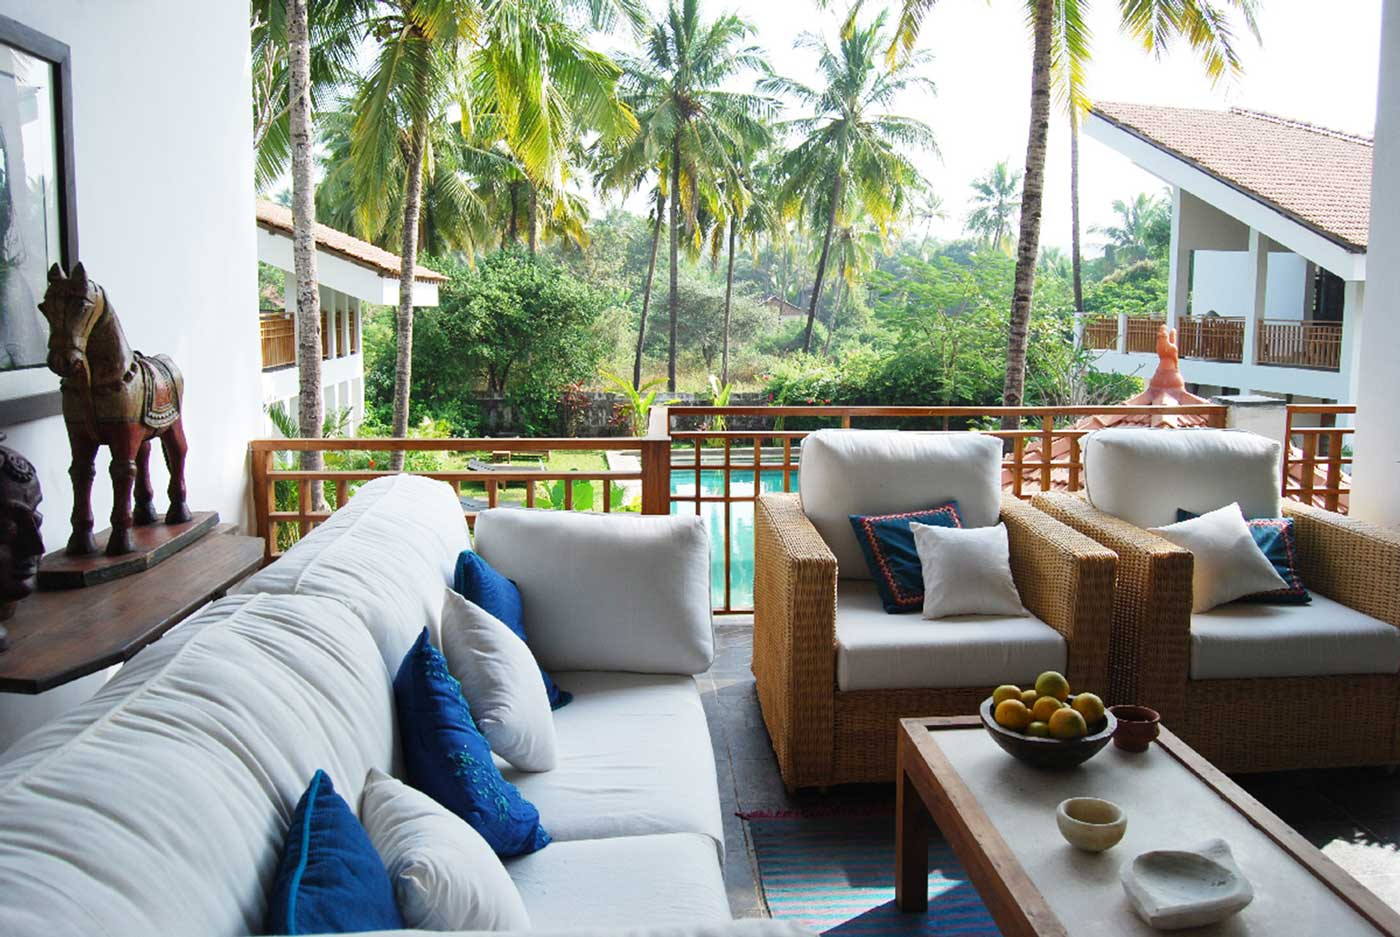 Coco Shambhala luxury villa - Ashvini. redefines luxury in an elegant and joyous form !